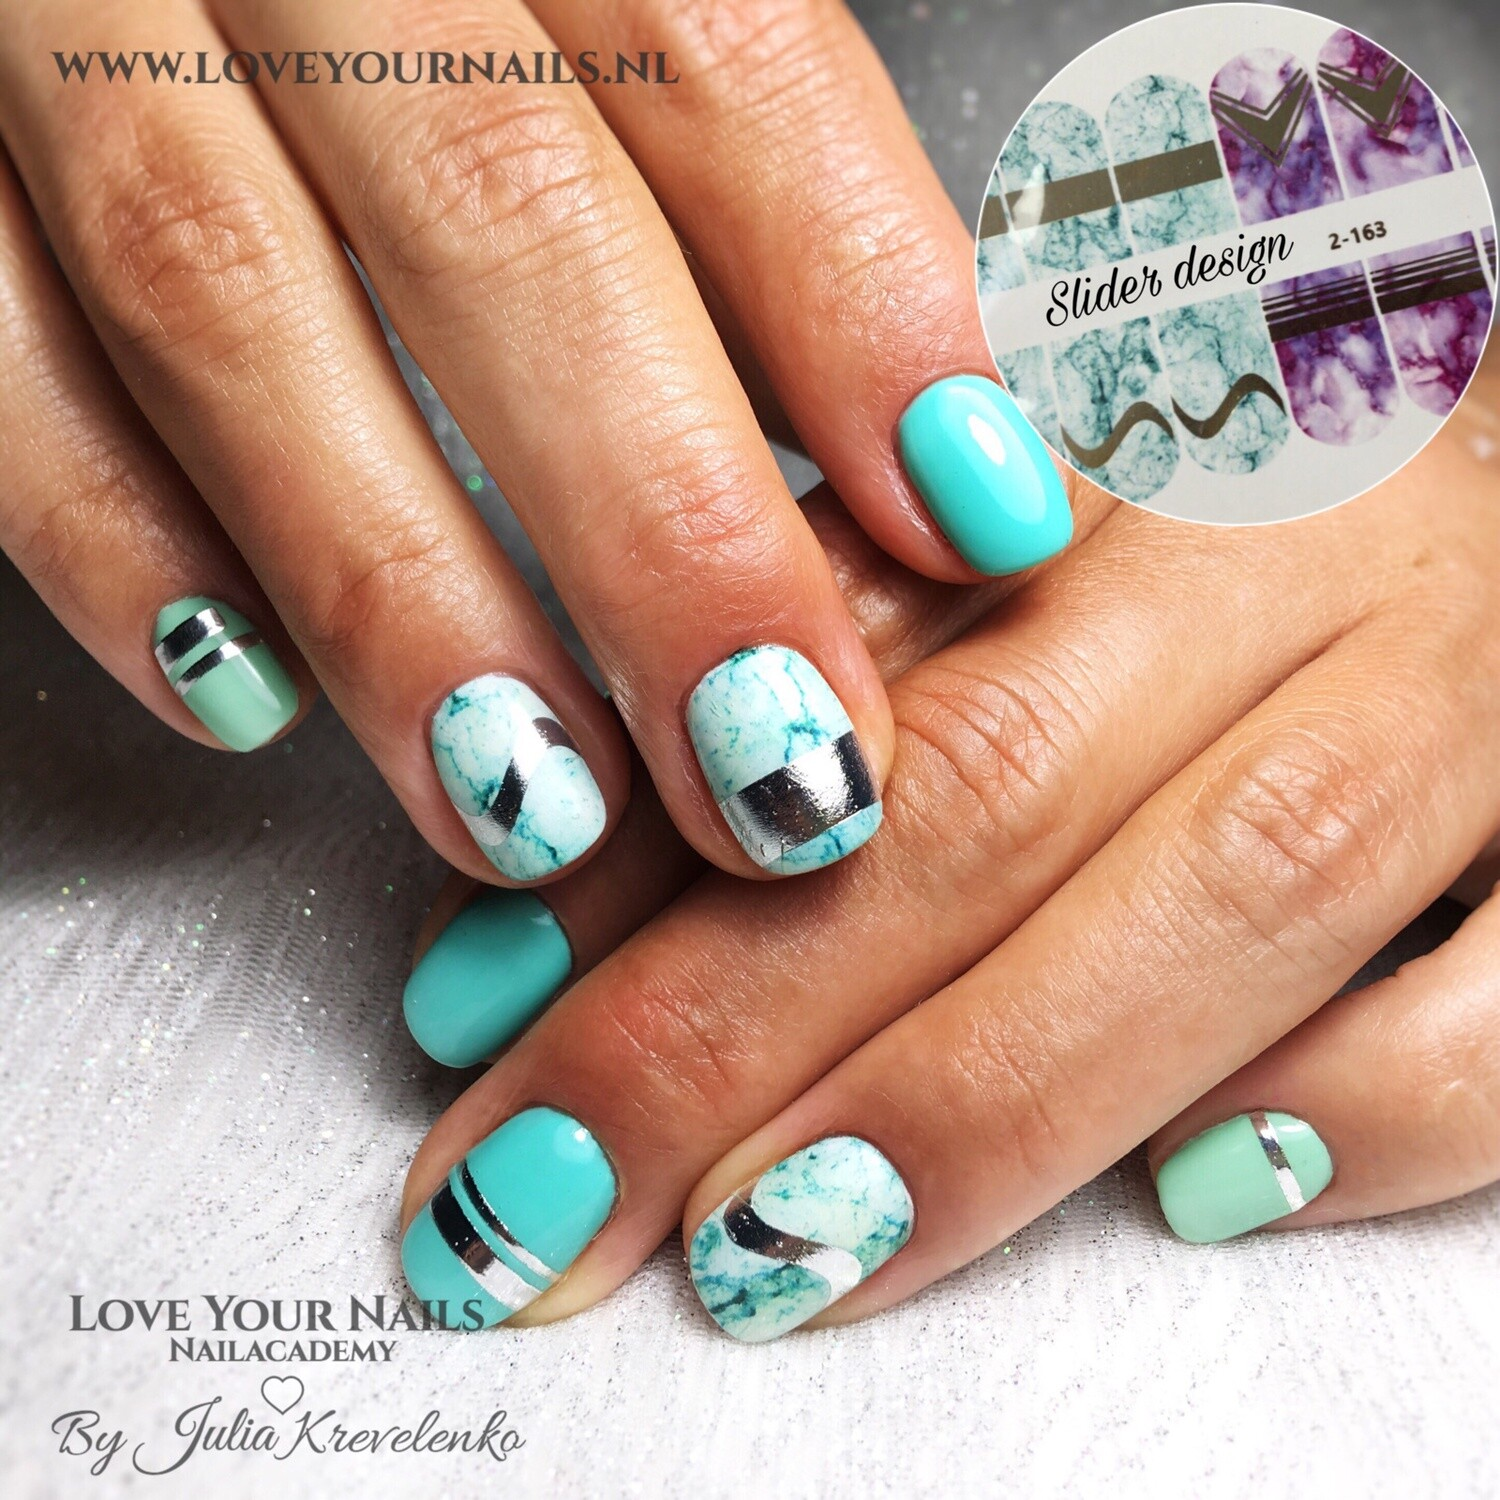 Marble turquoise and violet 2-163